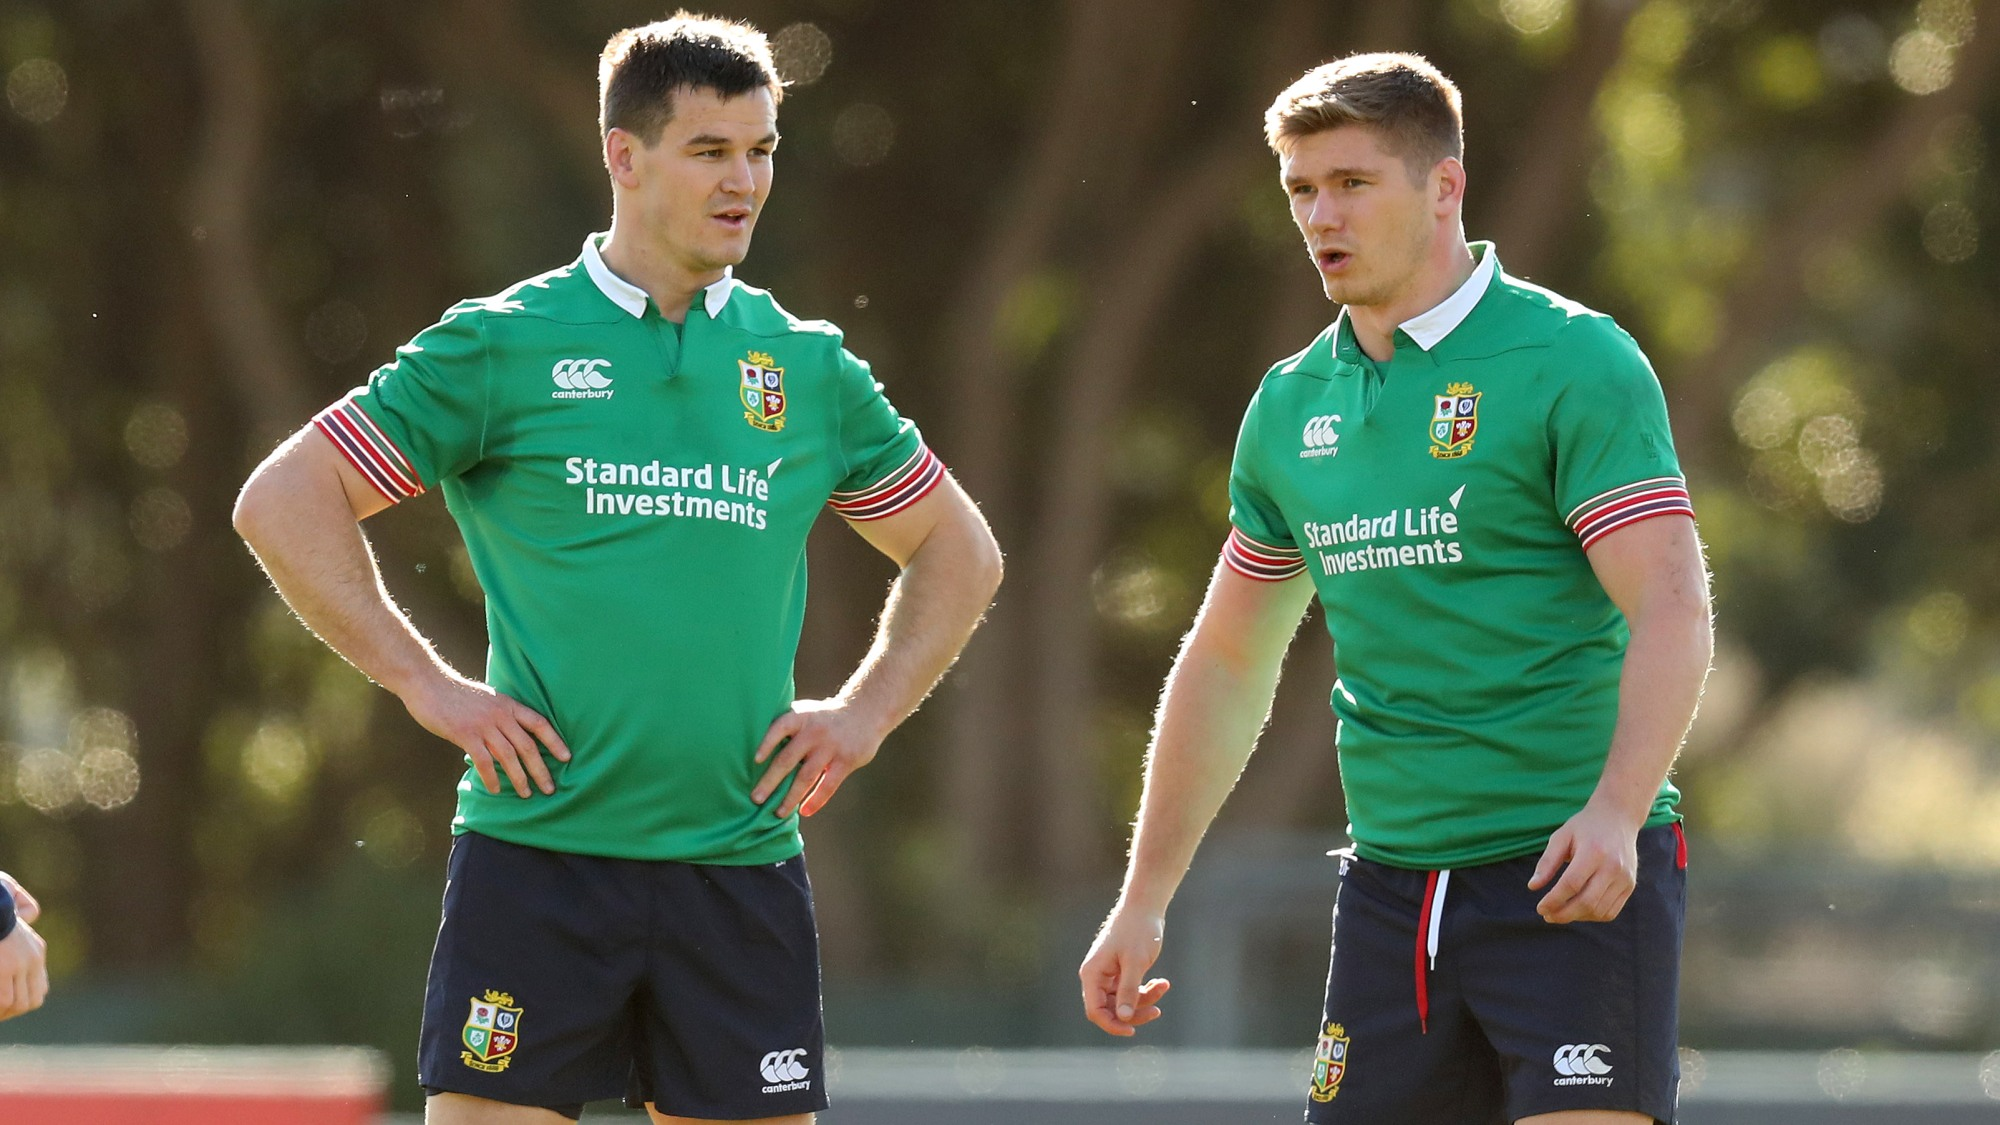 Sexton's partnership with Farrell will bear fruit this weekend